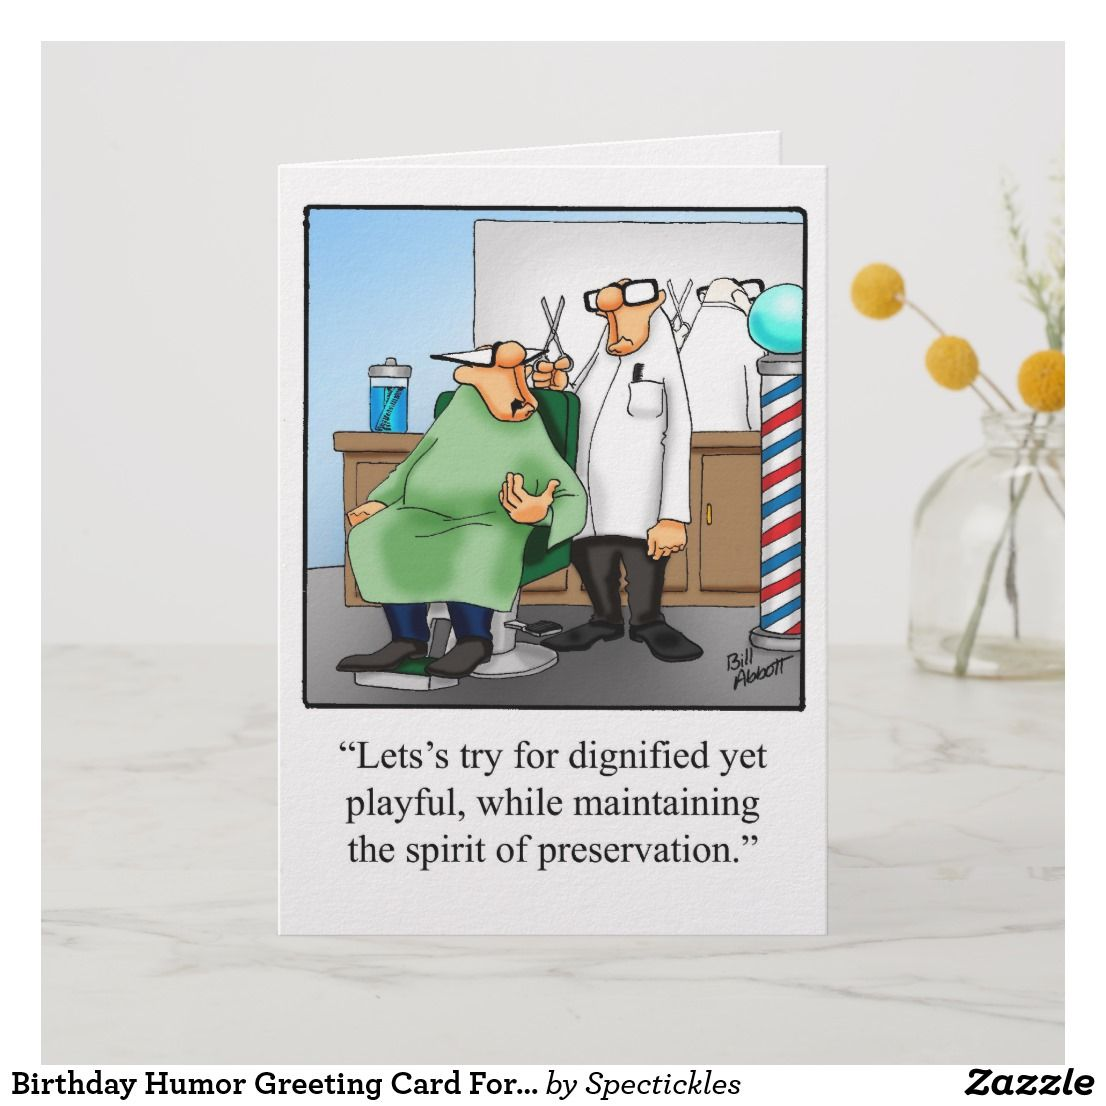 Birthday Humor Greeting Card For Him Cardsfunny Cardsgreeting Cardshappy Cardbirthday Cardsonline Cards